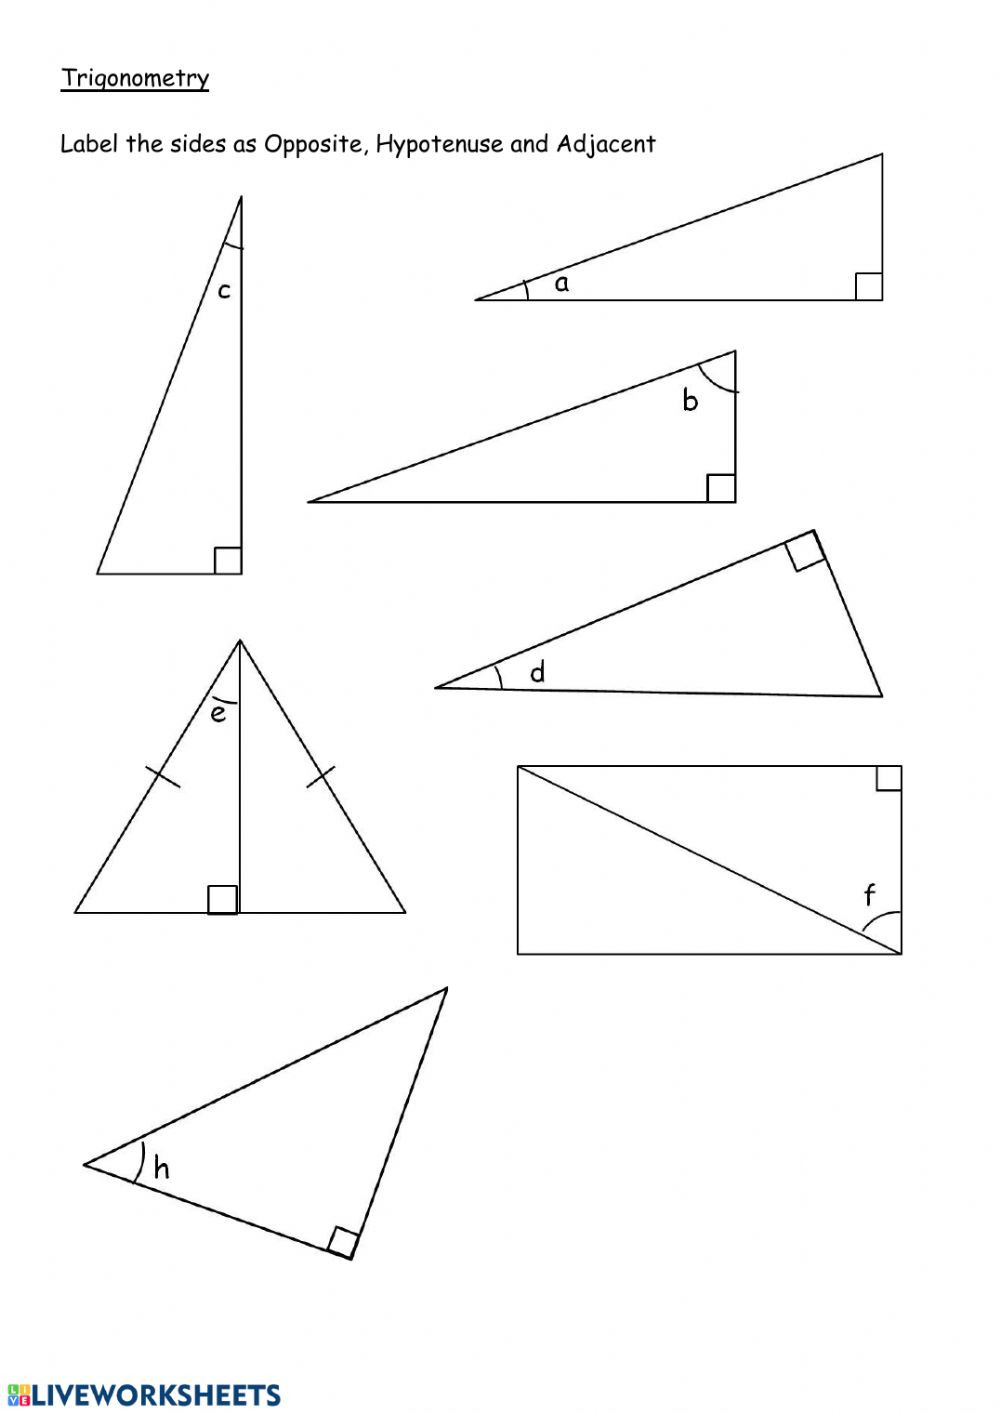 Right Triangle Trig Worksheet Answers Label Sides In Right Angle Triangles Interactive Worksheet